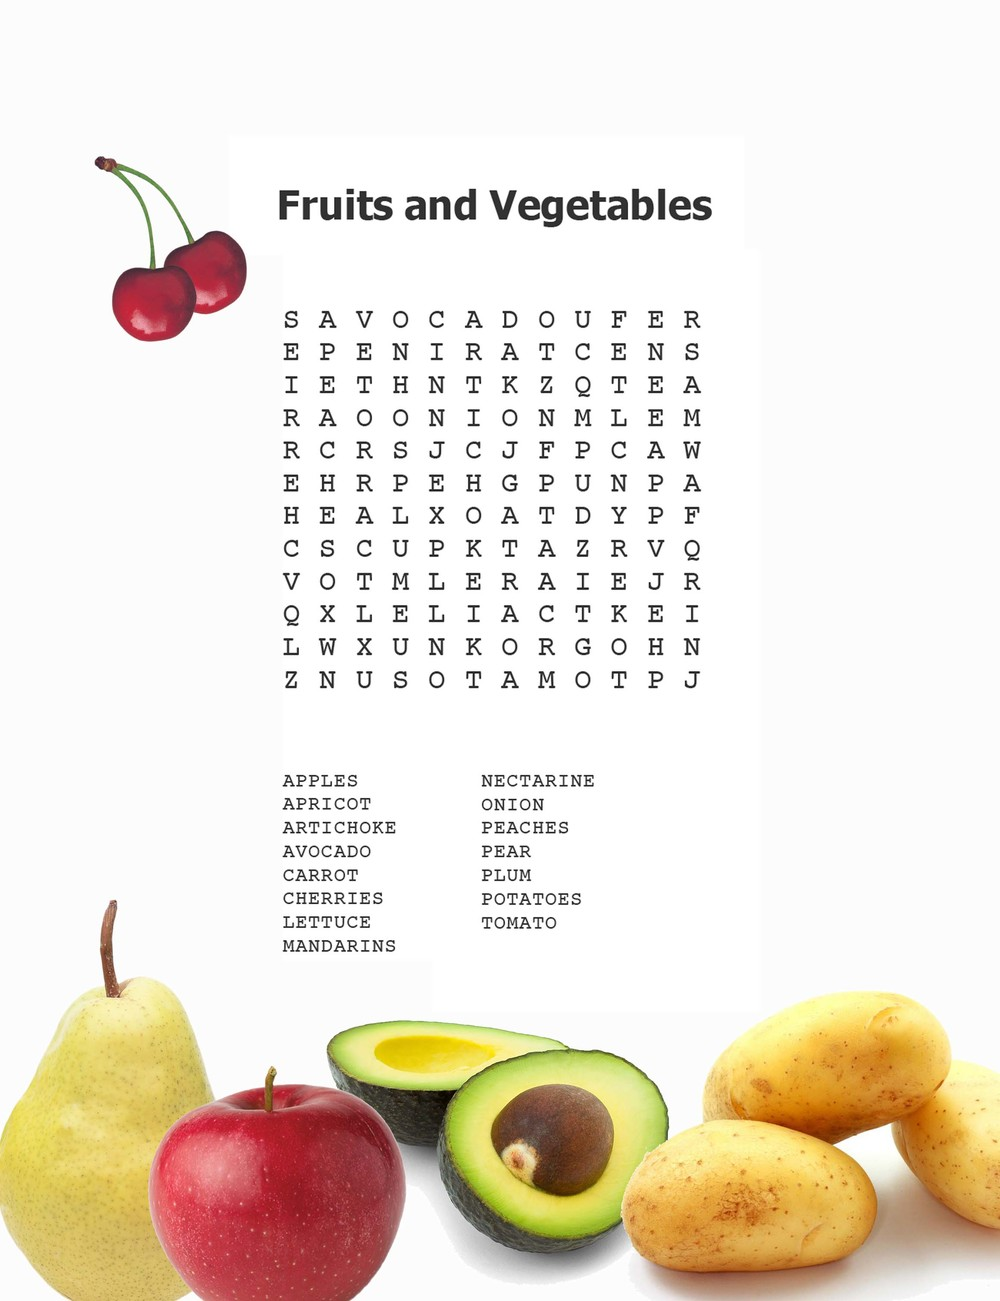 Fruitrition-Word-Search-Puzzle.jpg